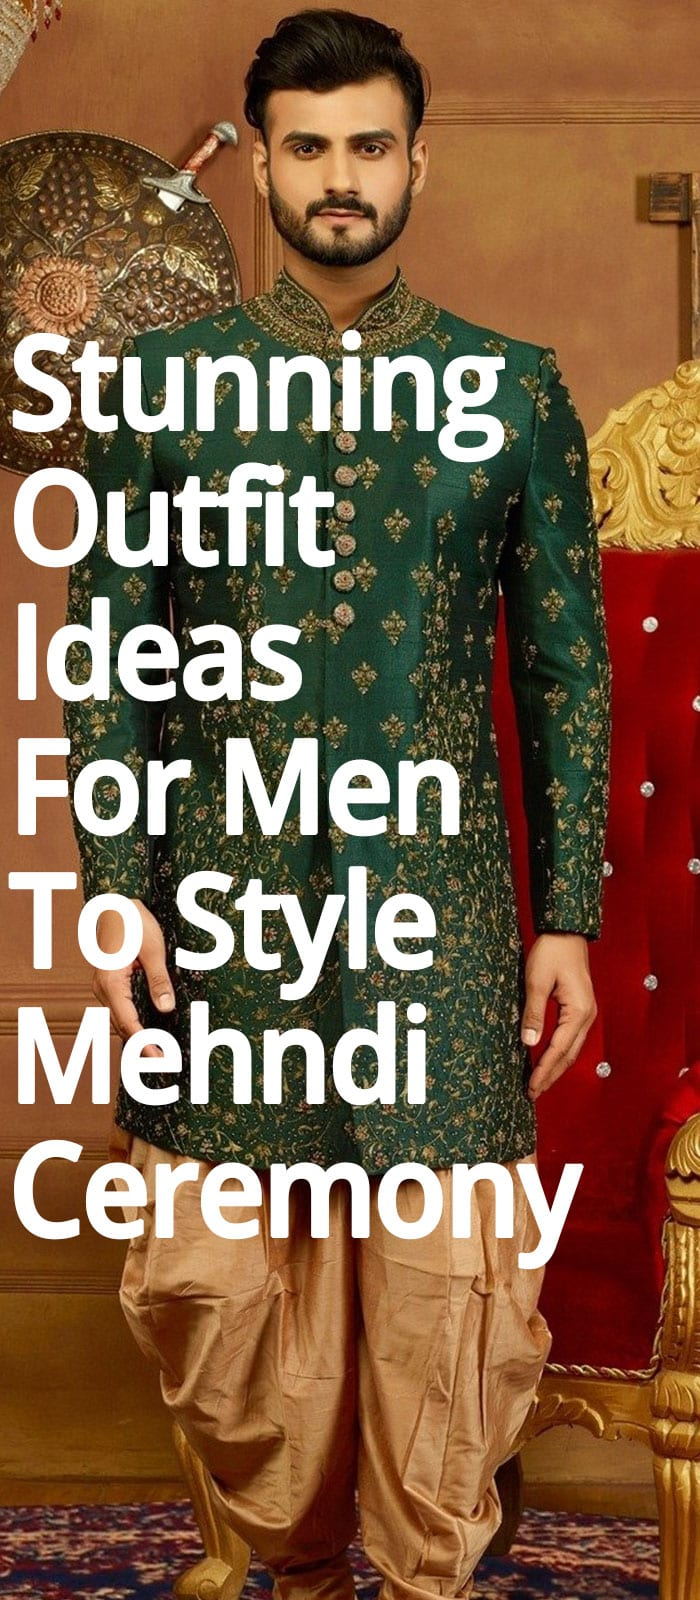 Stunning Outfit Ideas For Men To Style Mehndi Ceremony